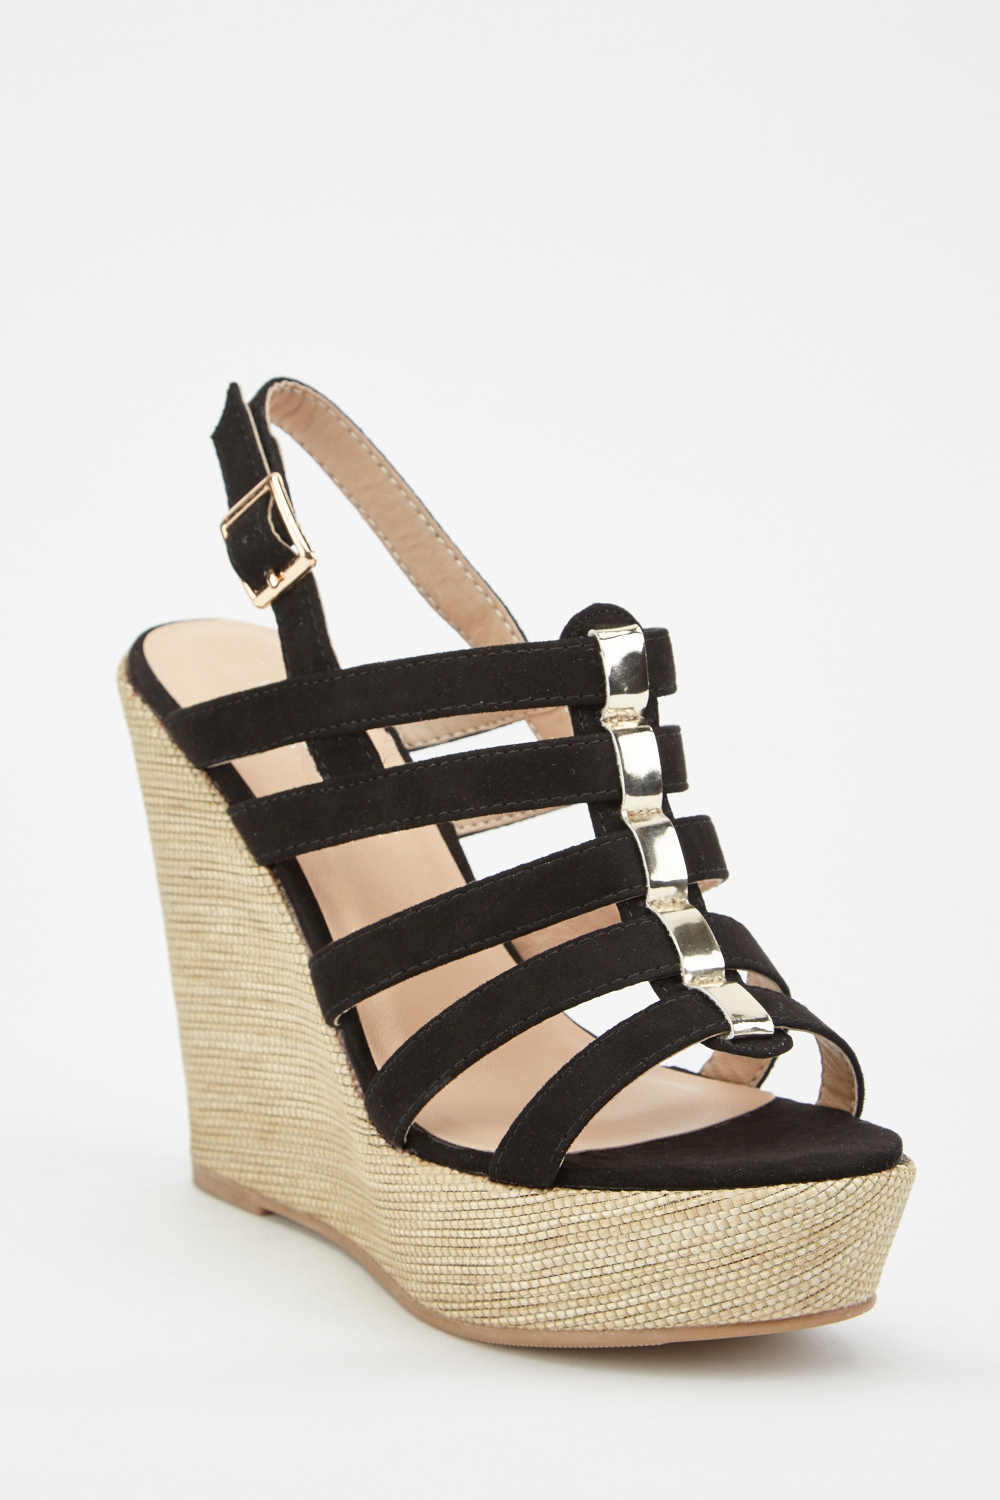 Suedette Cut Out Wedge Sandals Just £5